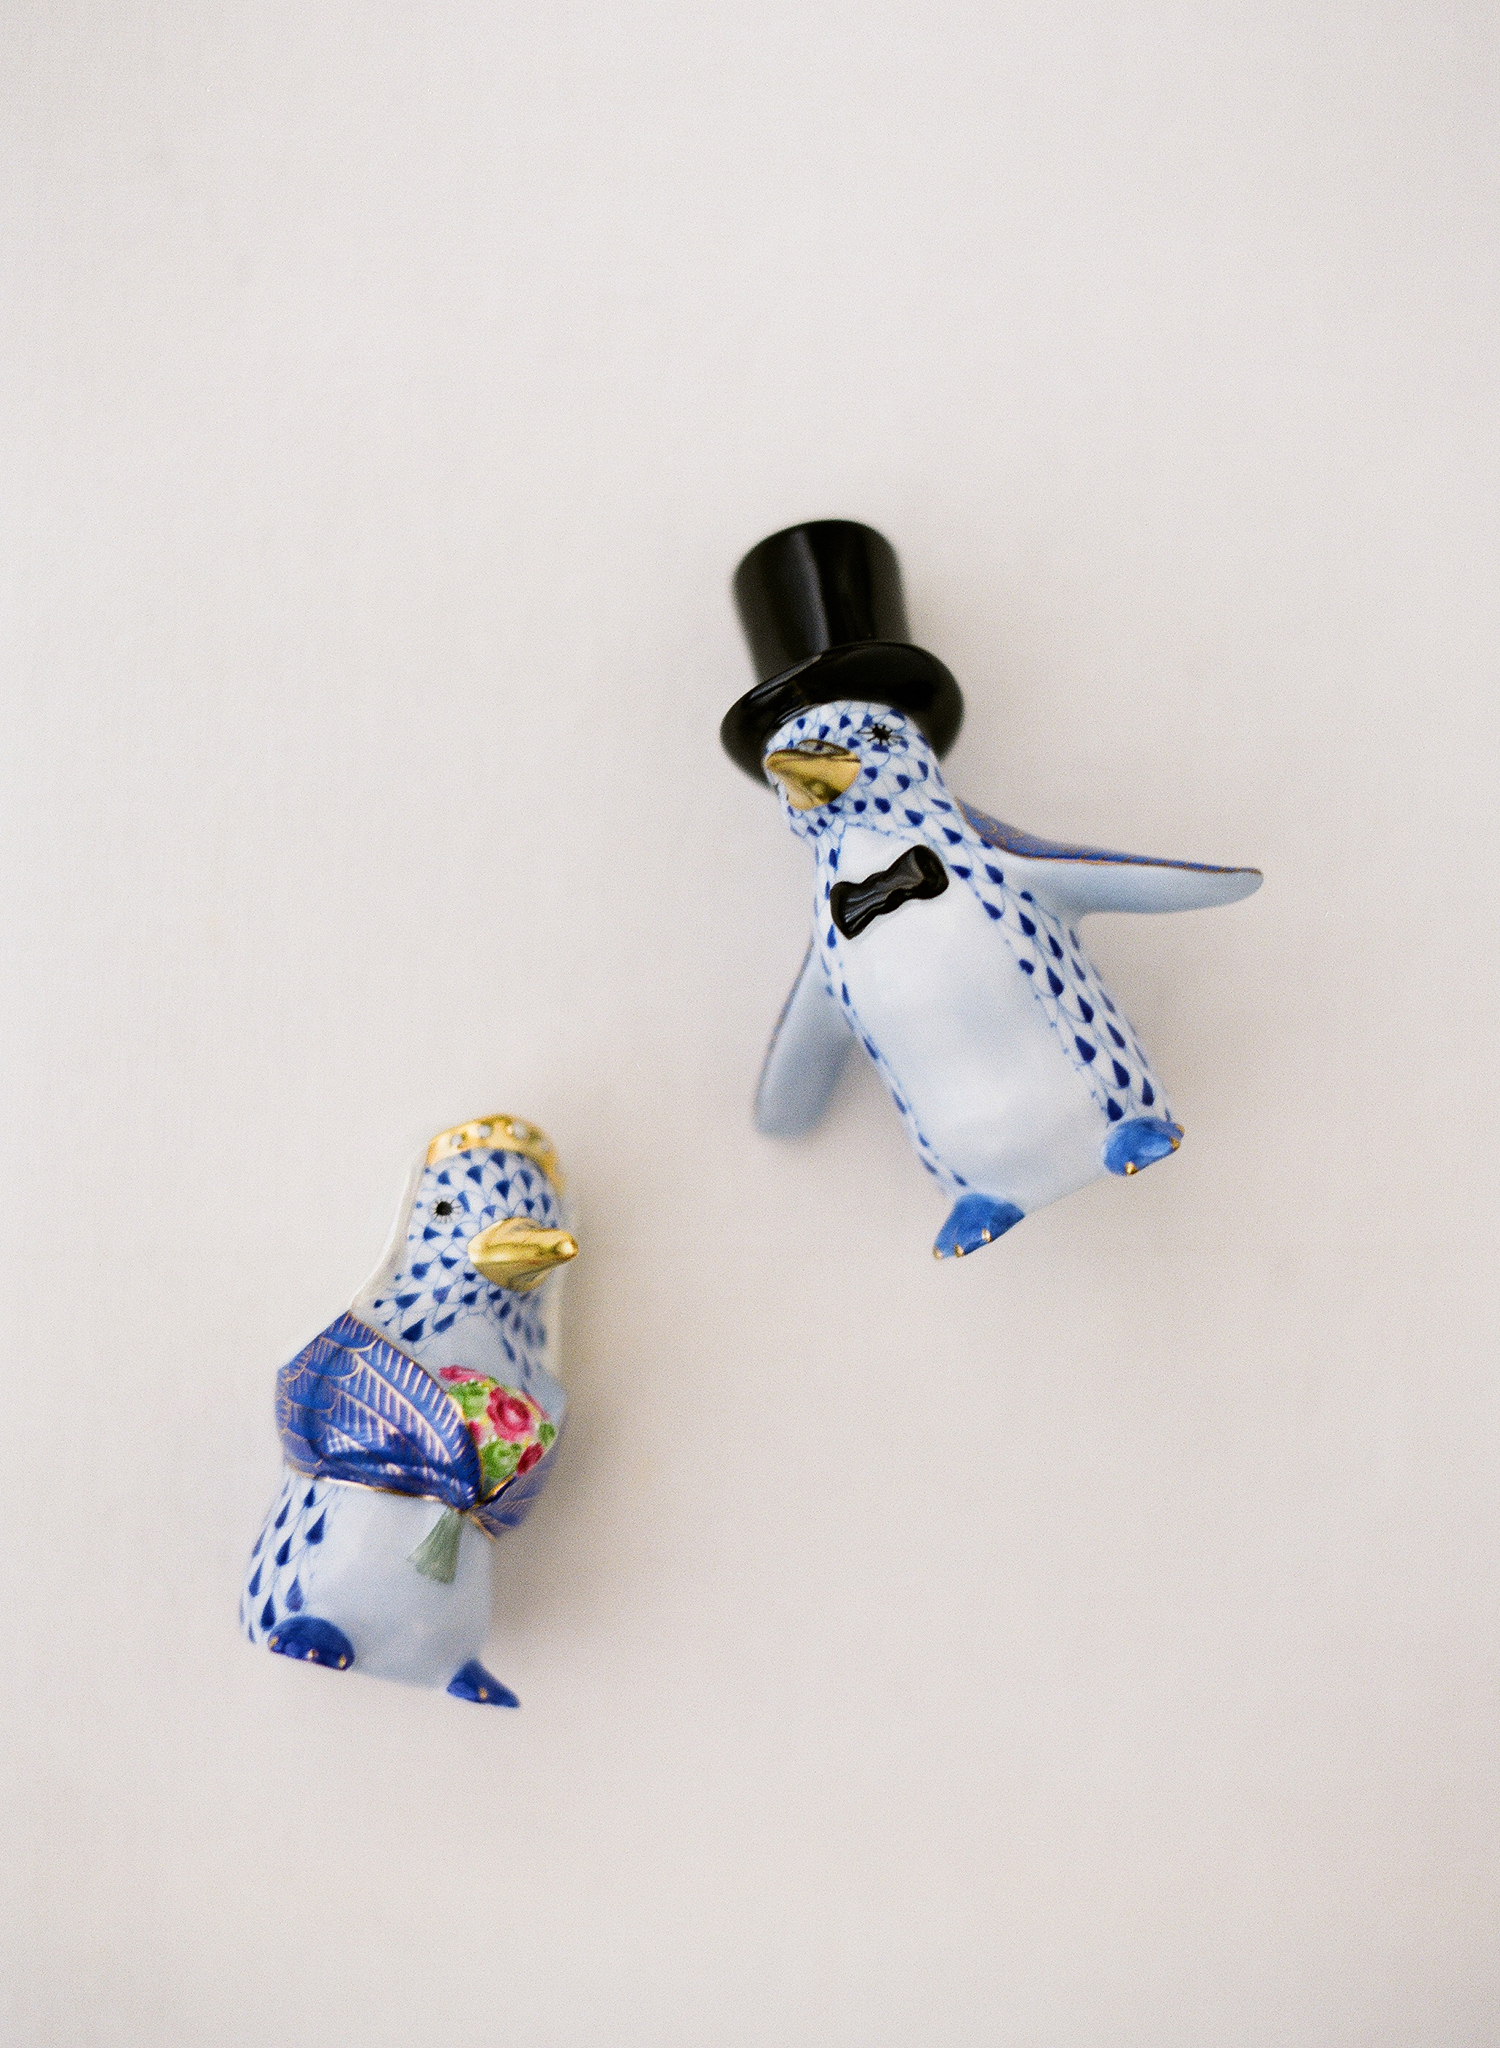 chelsea conor wedding cake toppers penguins